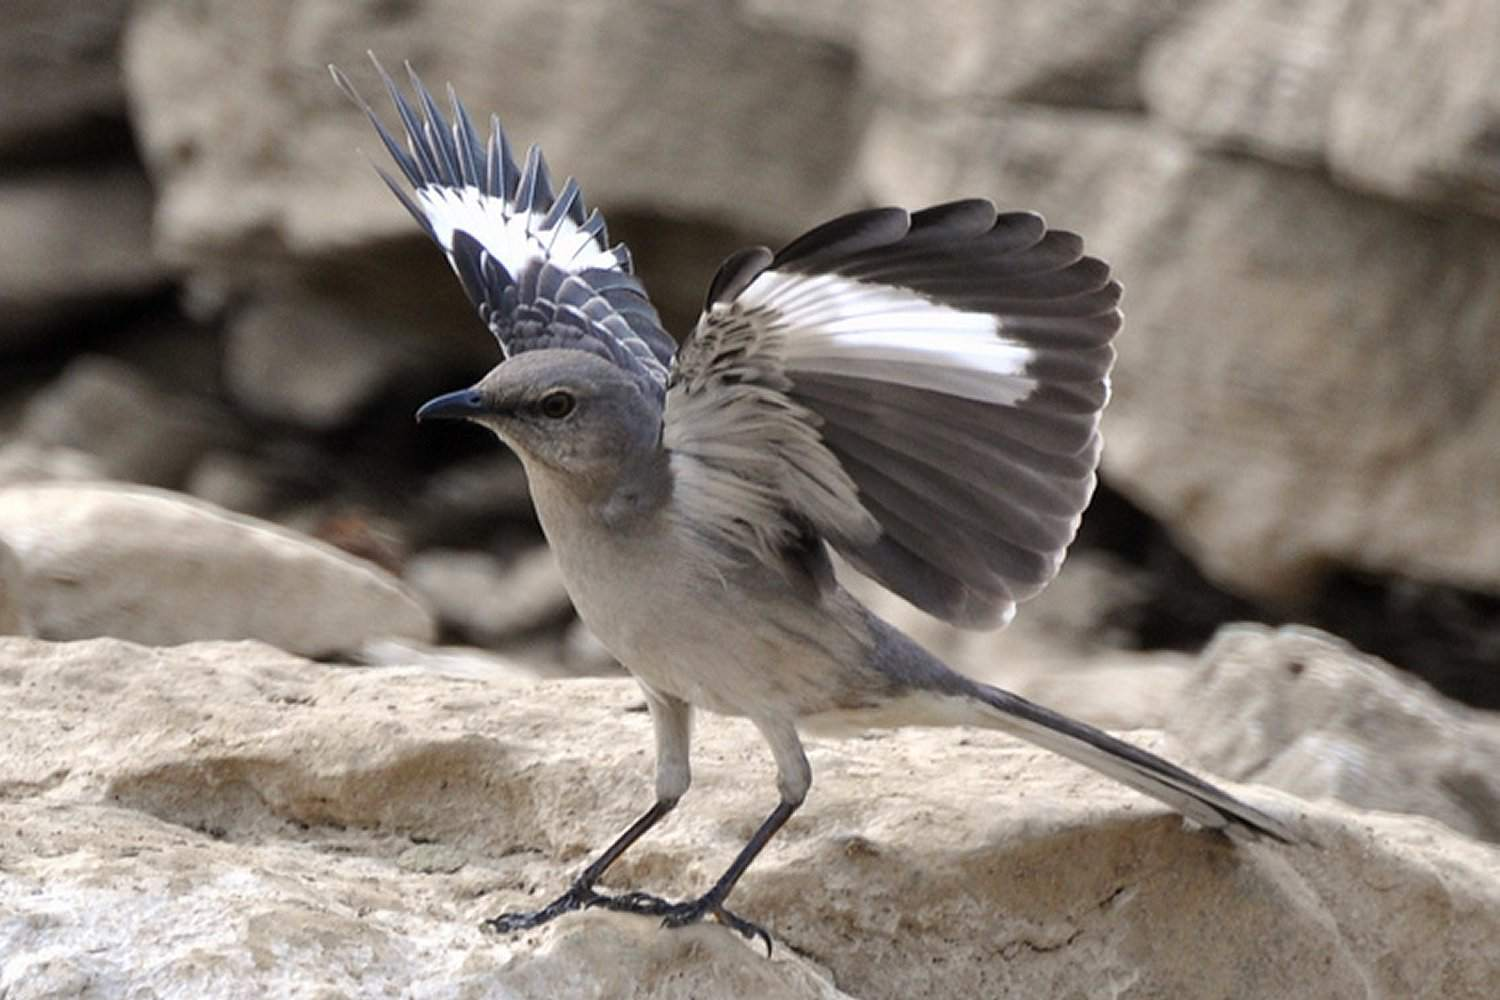 Northern Mockingbird, the state bird of Texas, with its wings extended.